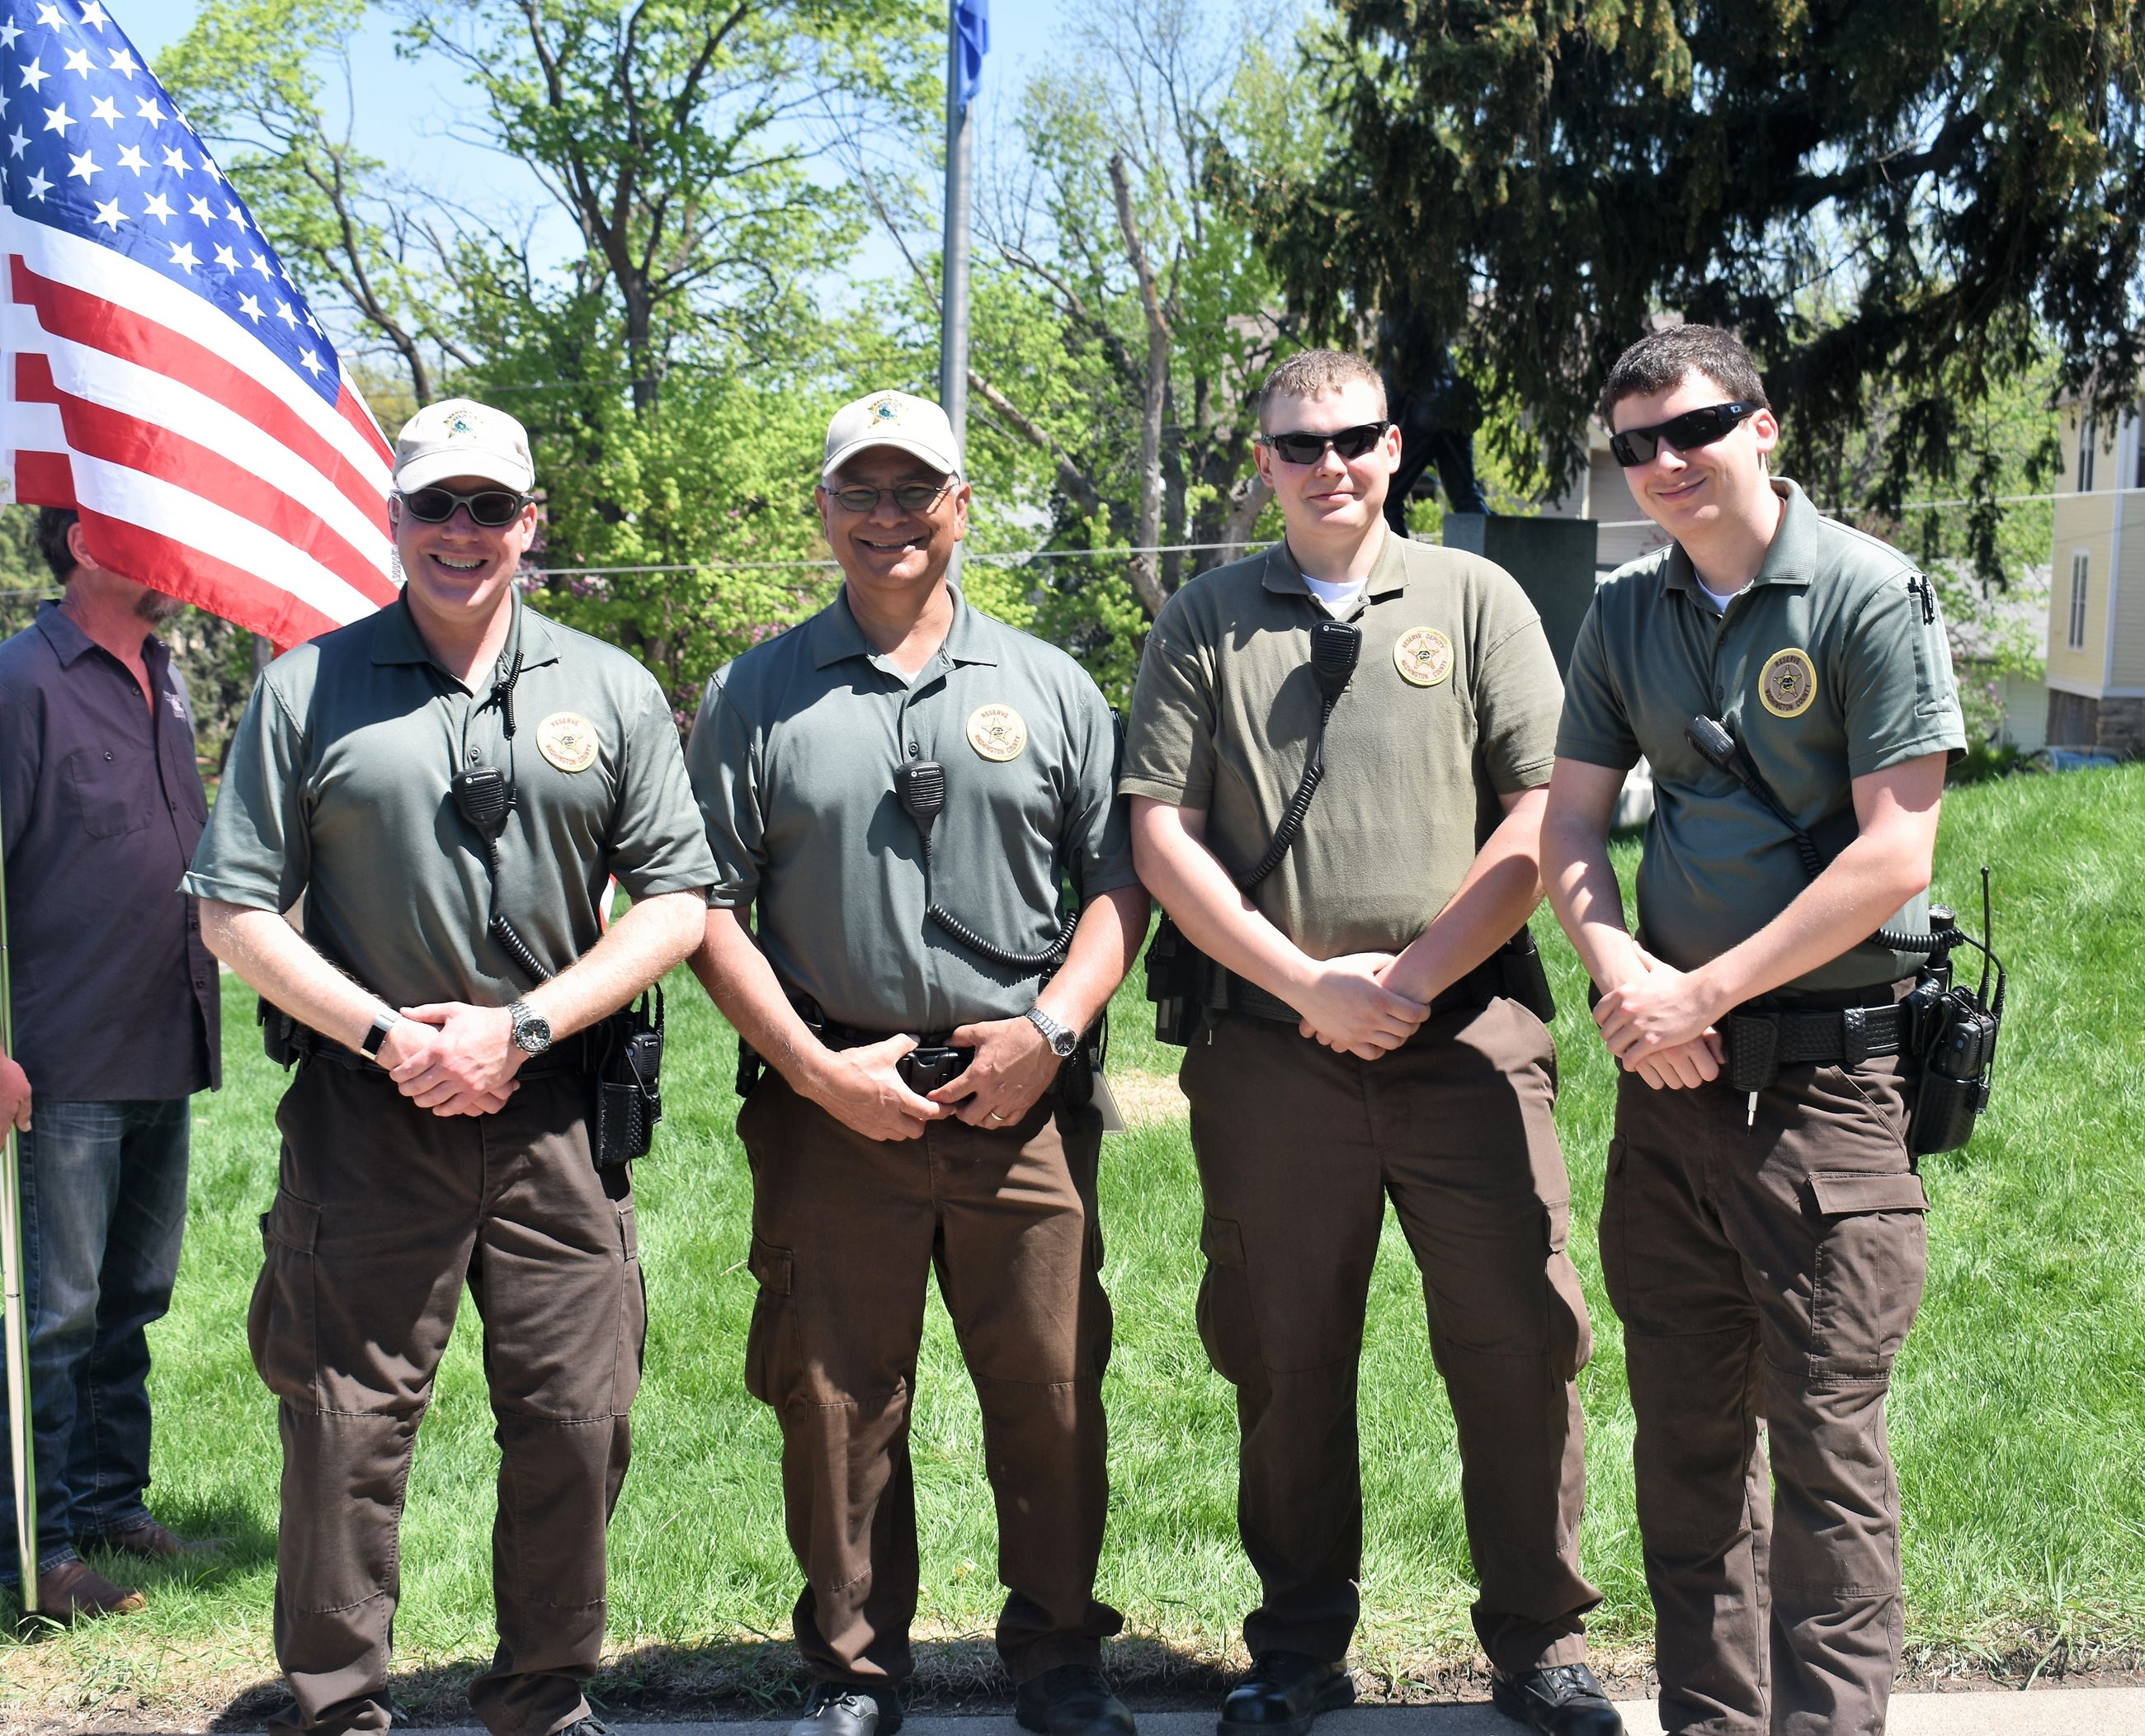 Volunteer Opportunities | Washington County, MN - Official